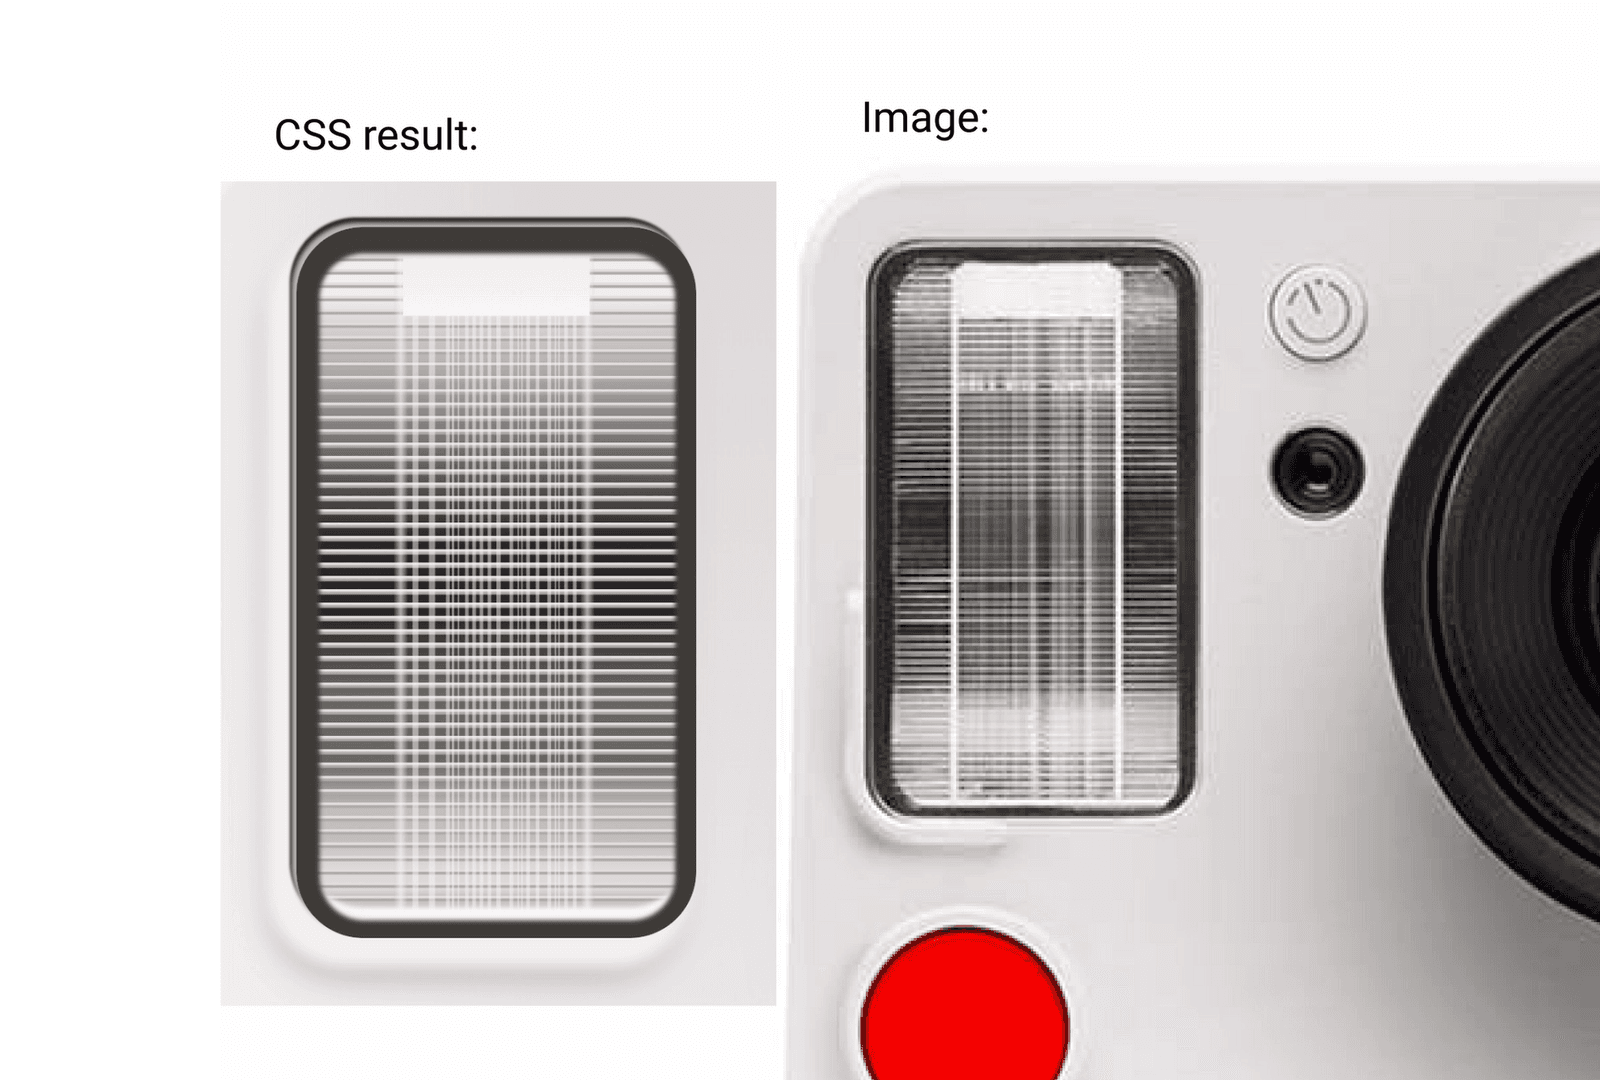 flash drawn in css vs the actual flash. Both look almost identical